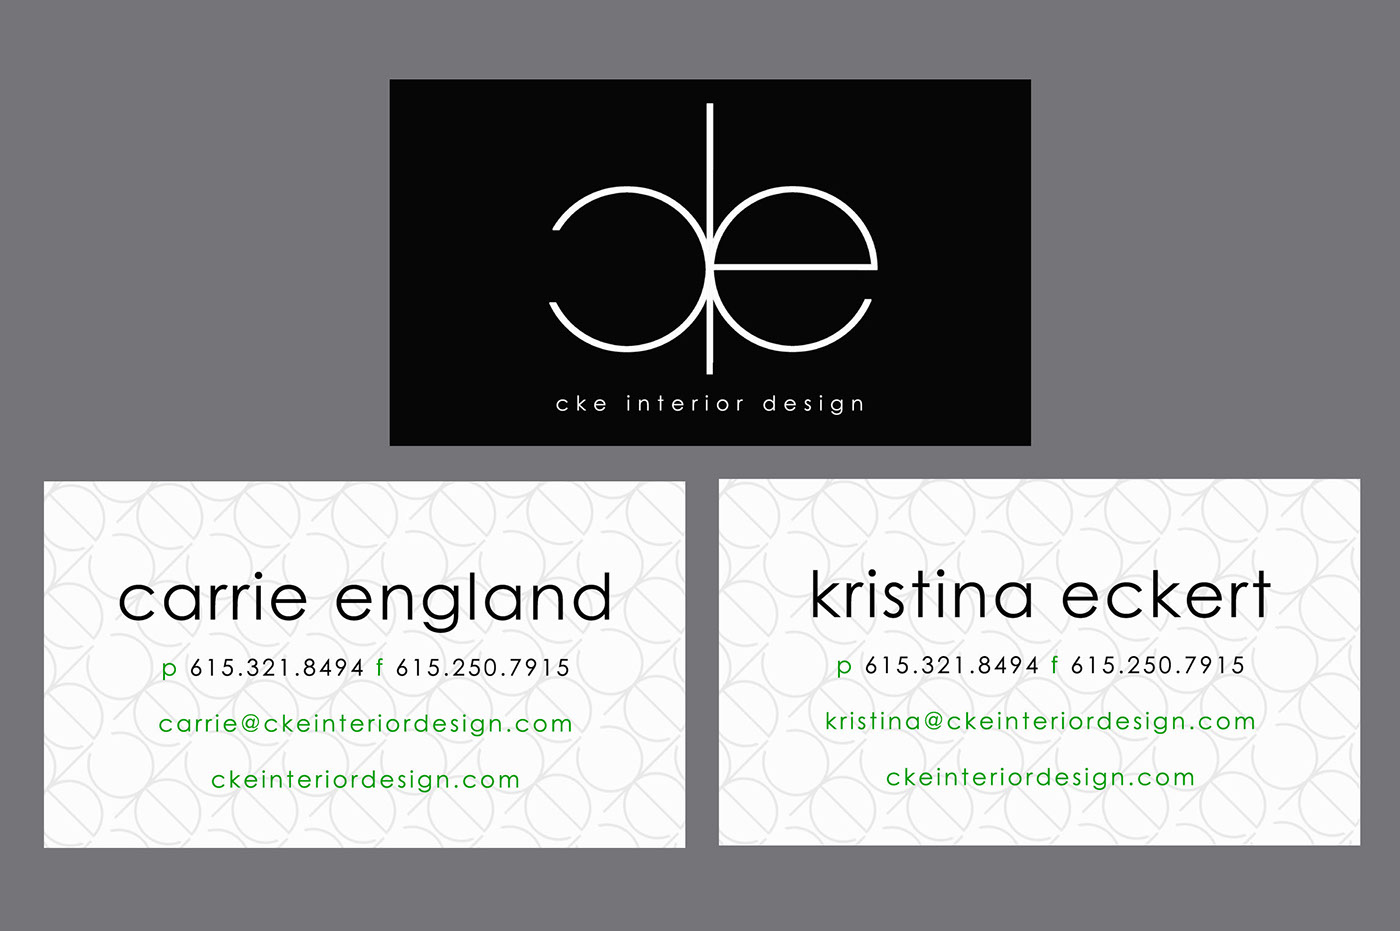 Cke interior design business cards on behance - Business name for interior design company ...